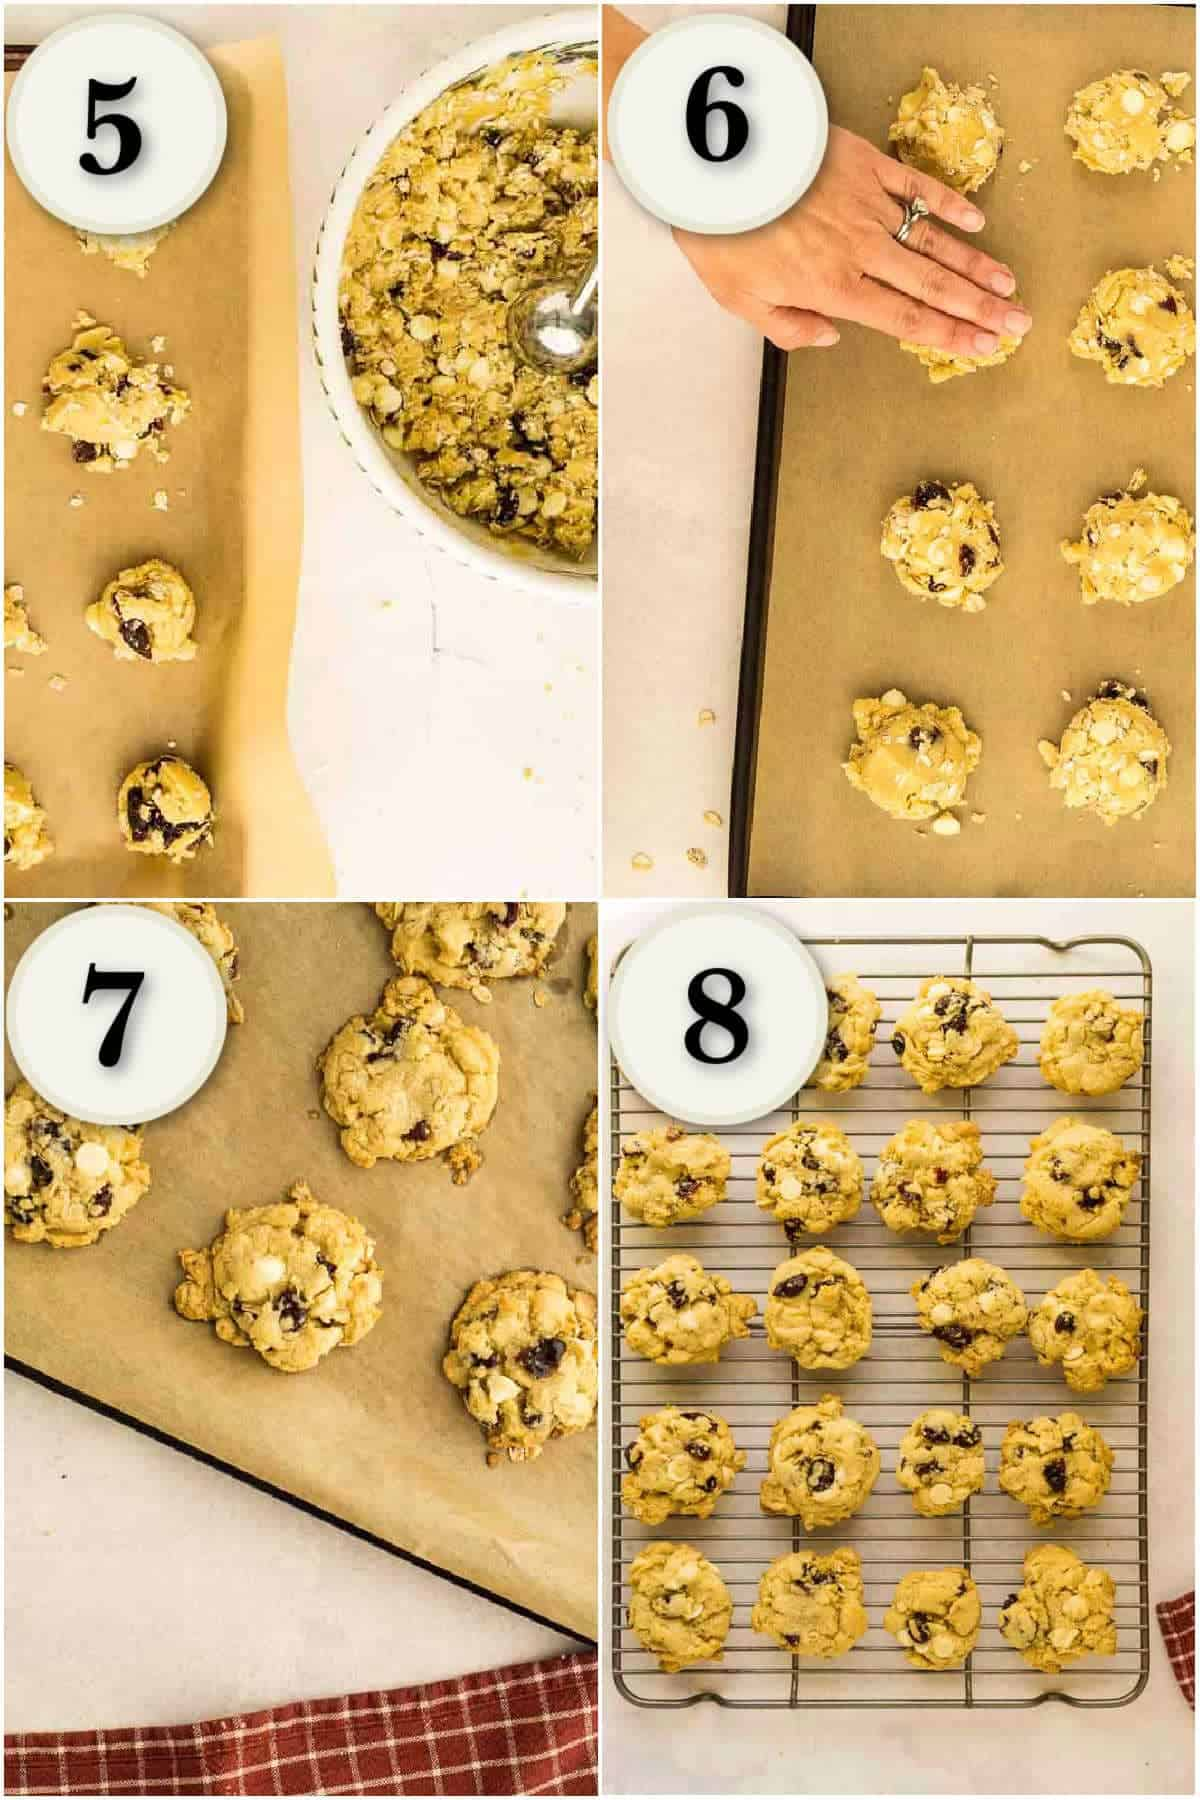 shaping cookie dough, baking, and cooling on wire rack